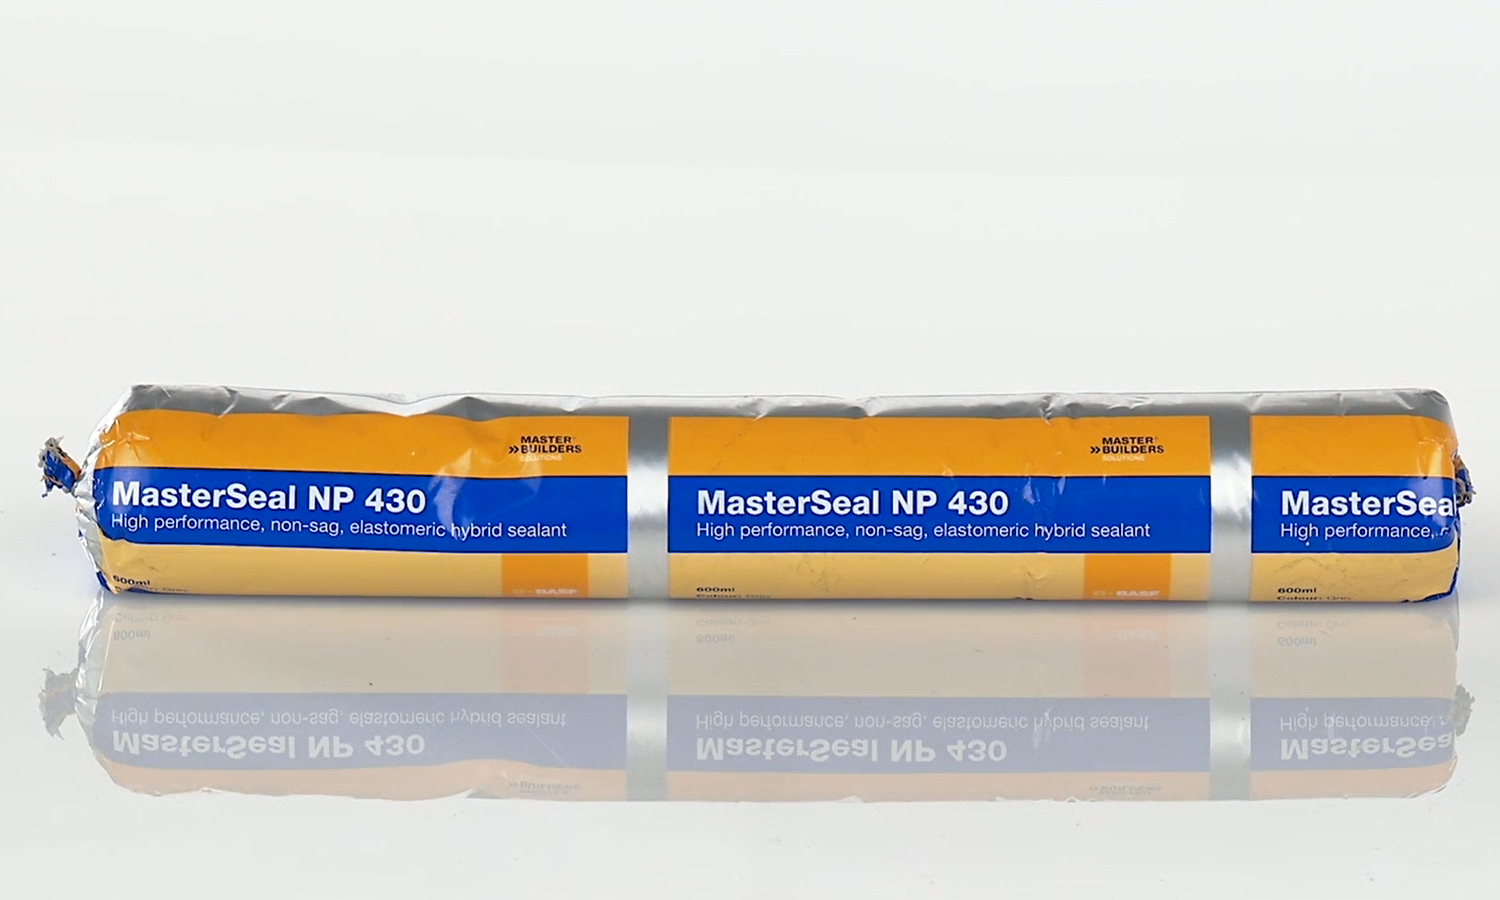 BASF launches two new MasterSeal® products in Australia